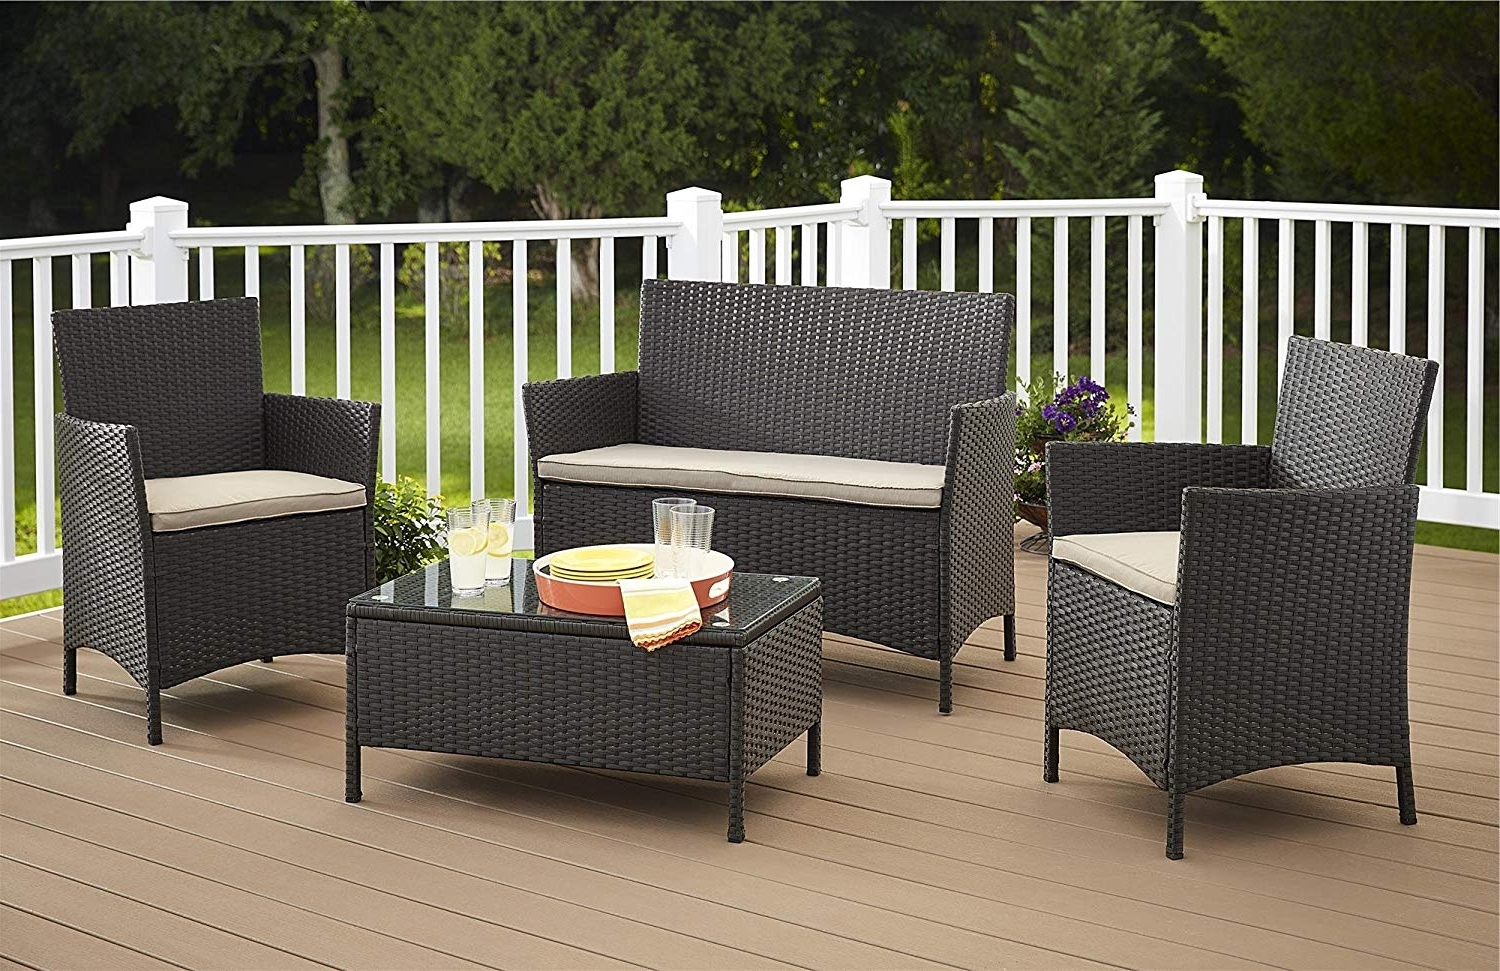 Outdoor Patio Furniture Conversation Sets Intended For Favorite Amazon: Cosco Products 4 Piece Jamaica Resin Wicker Conversation (View 6 of 15)